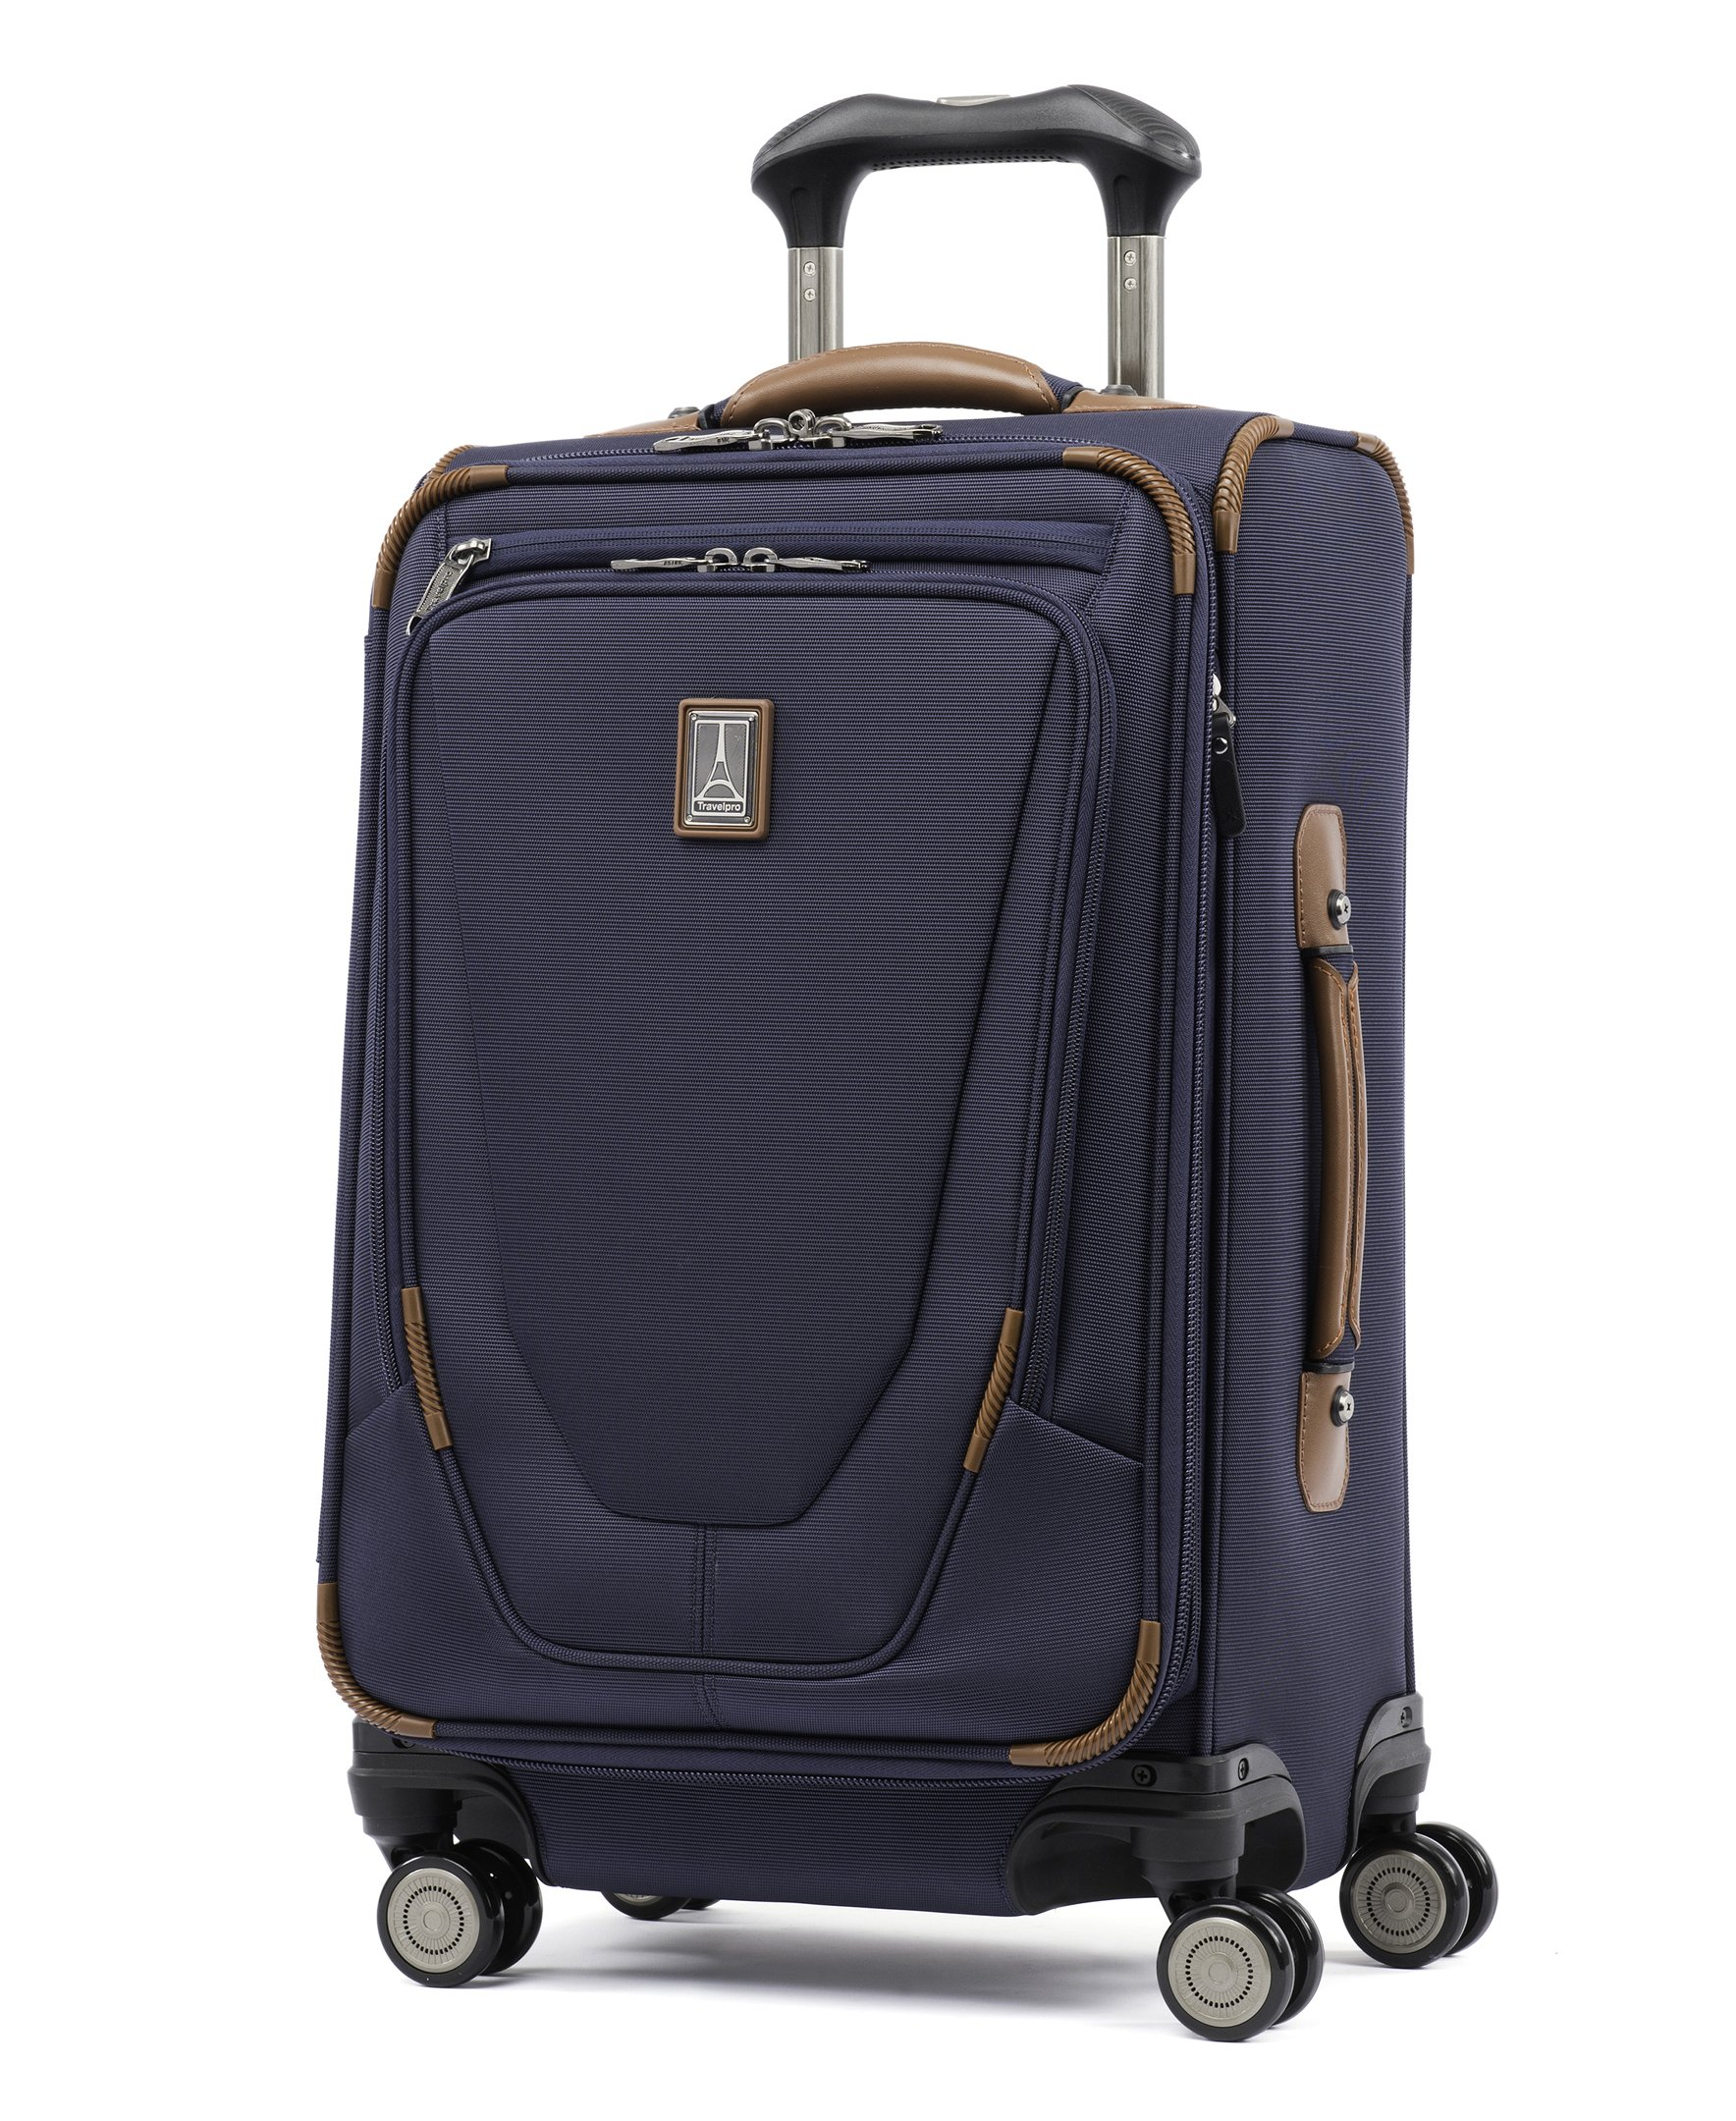 Travelpro Crew 11 21'' Expandable Spinner Carry-on Suiter Suitcase, Patriot Blue